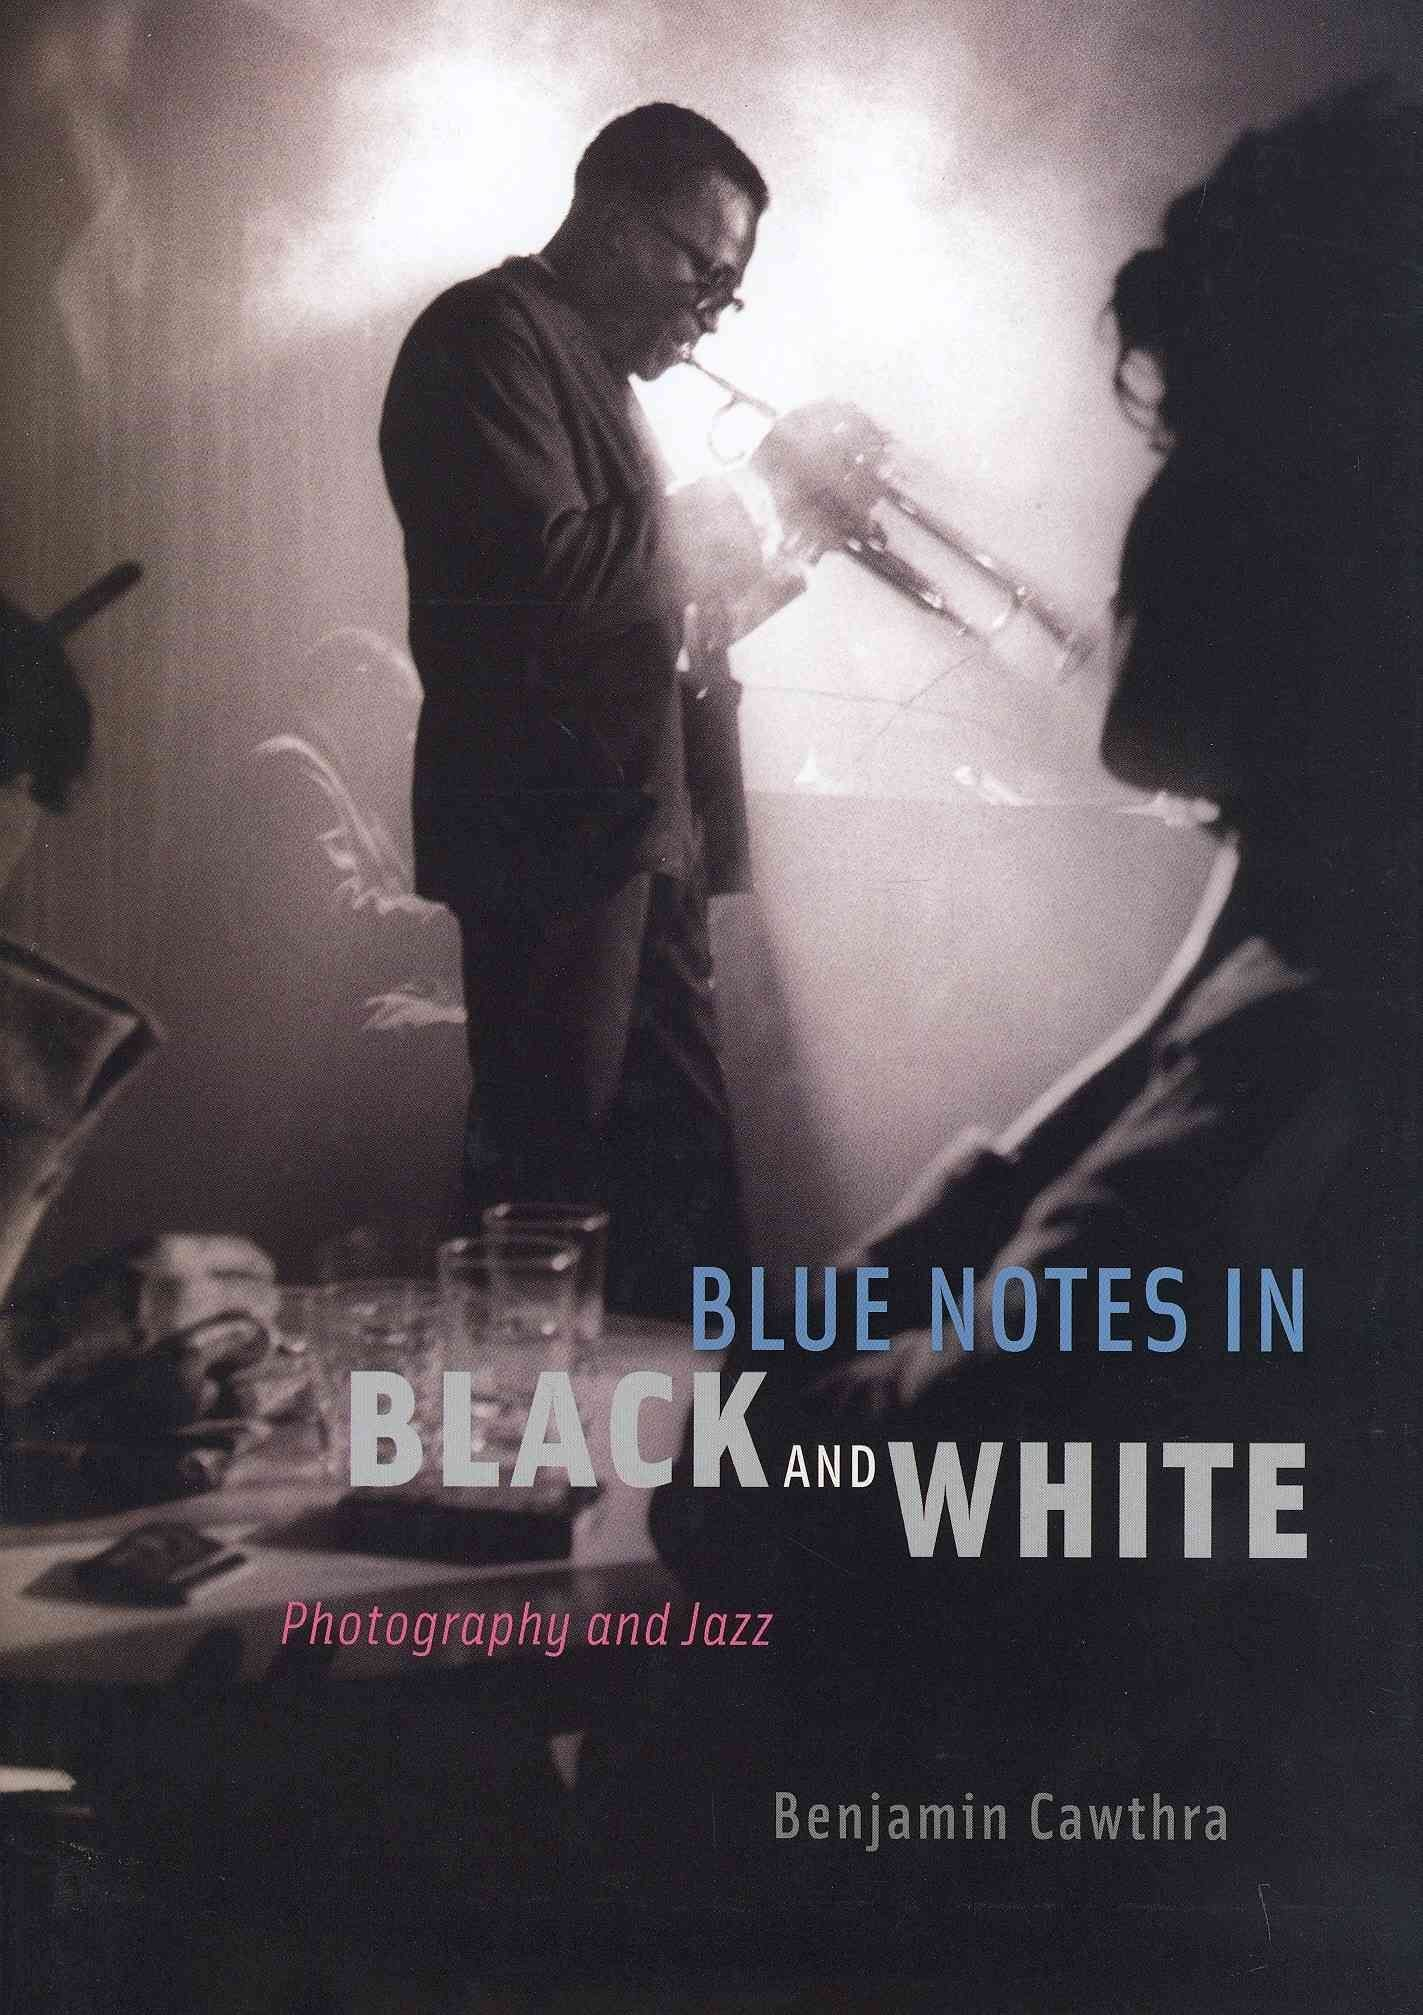 Blue Notes in Black and White - Benjamin Cawthra